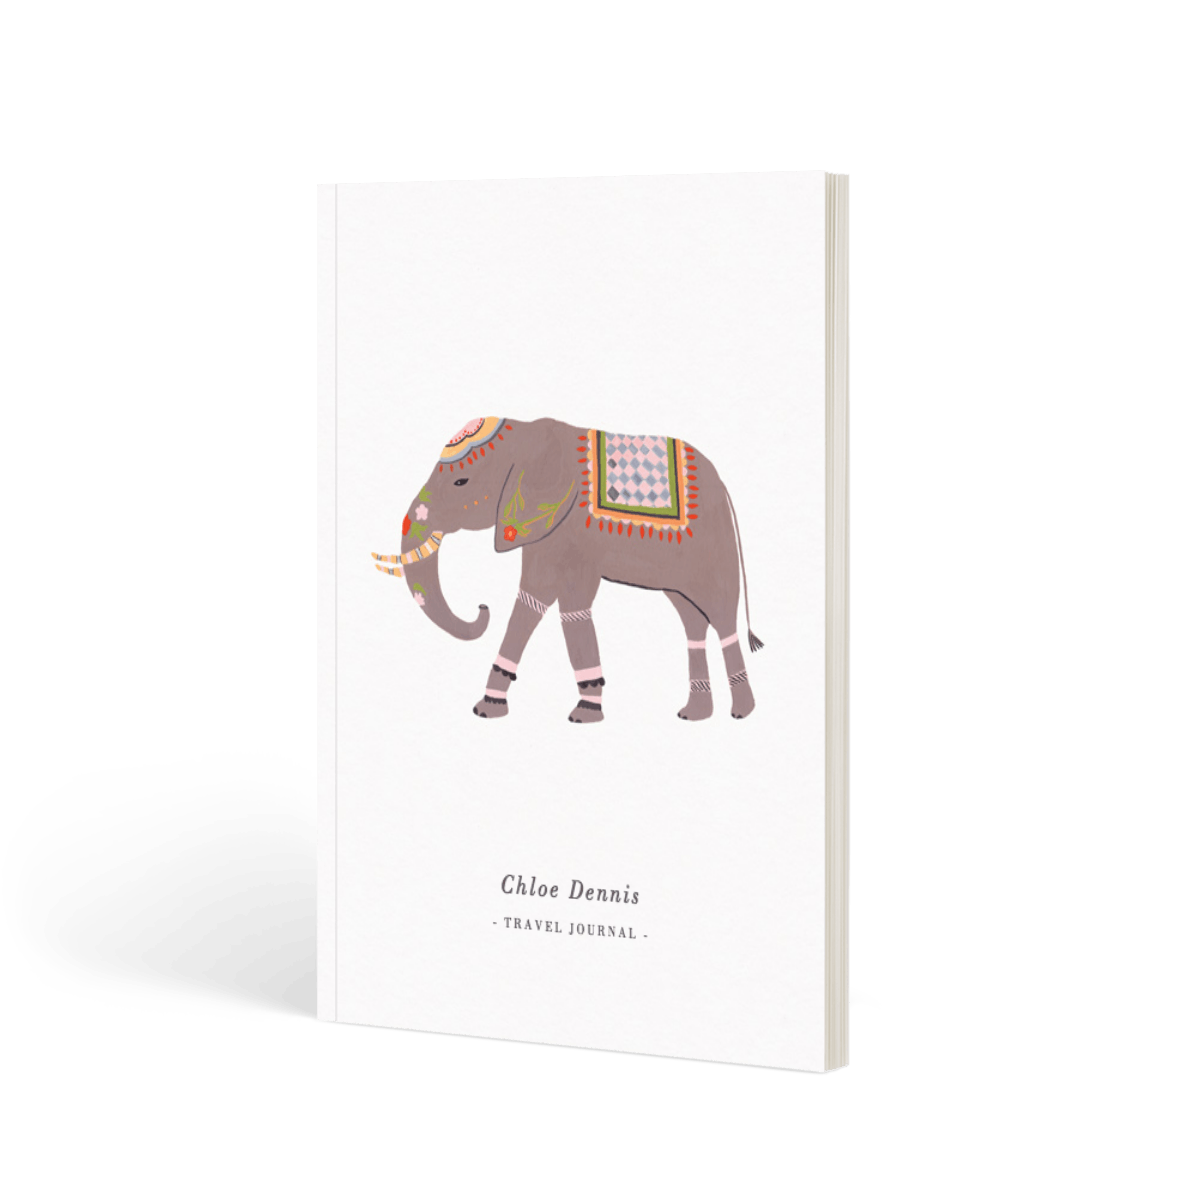 Https%3a%2f%2fwww.papier.com%2fproduct image%2f53835%2f6%2feastern elephant 12965 front 1542114586.png?ixlib=rb 1.1